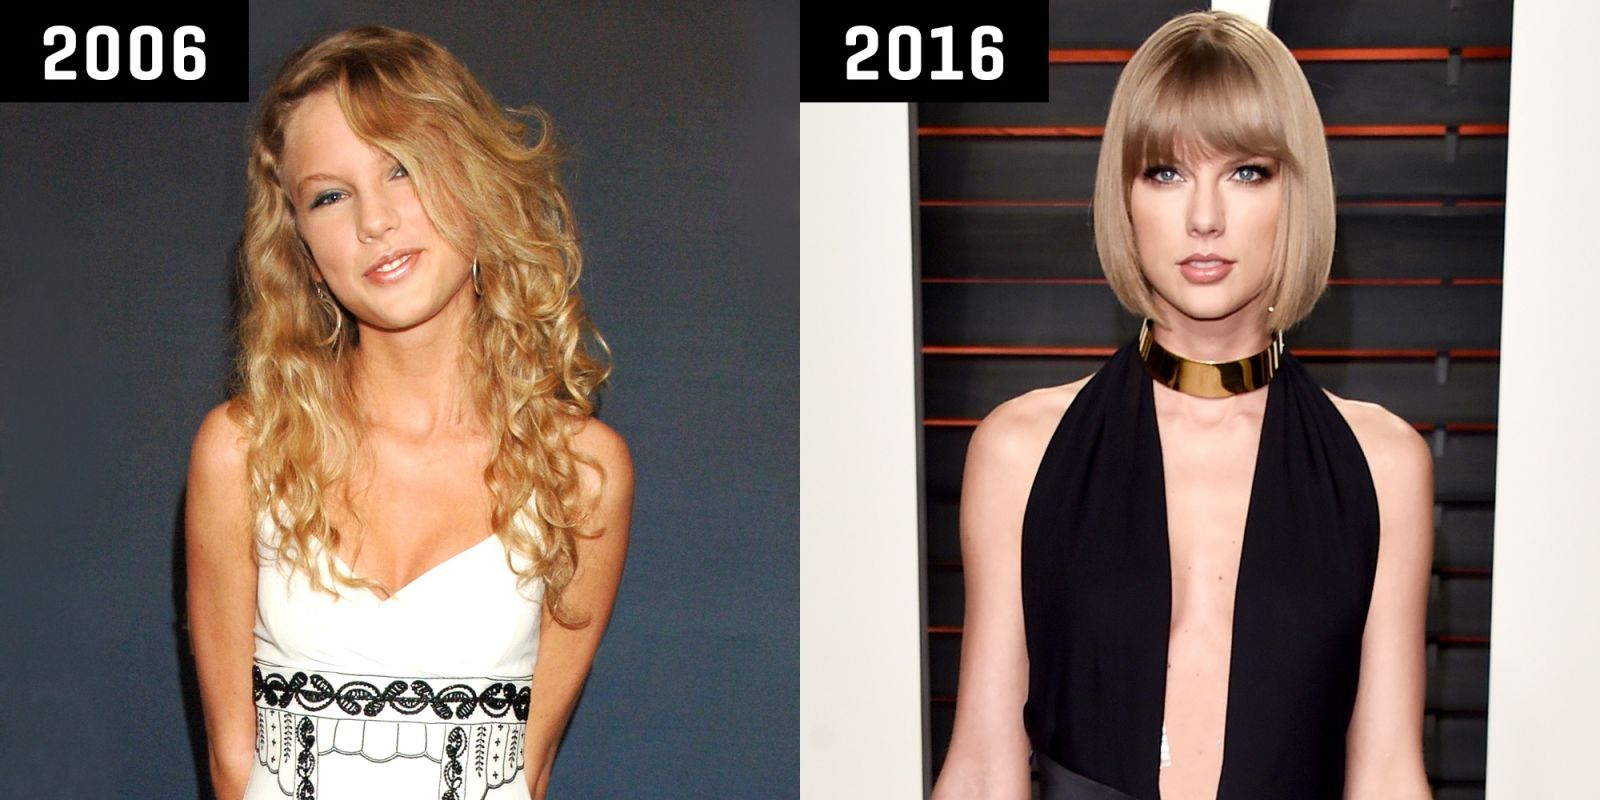 Taylor Swifts mind-bending style transformation from 2006